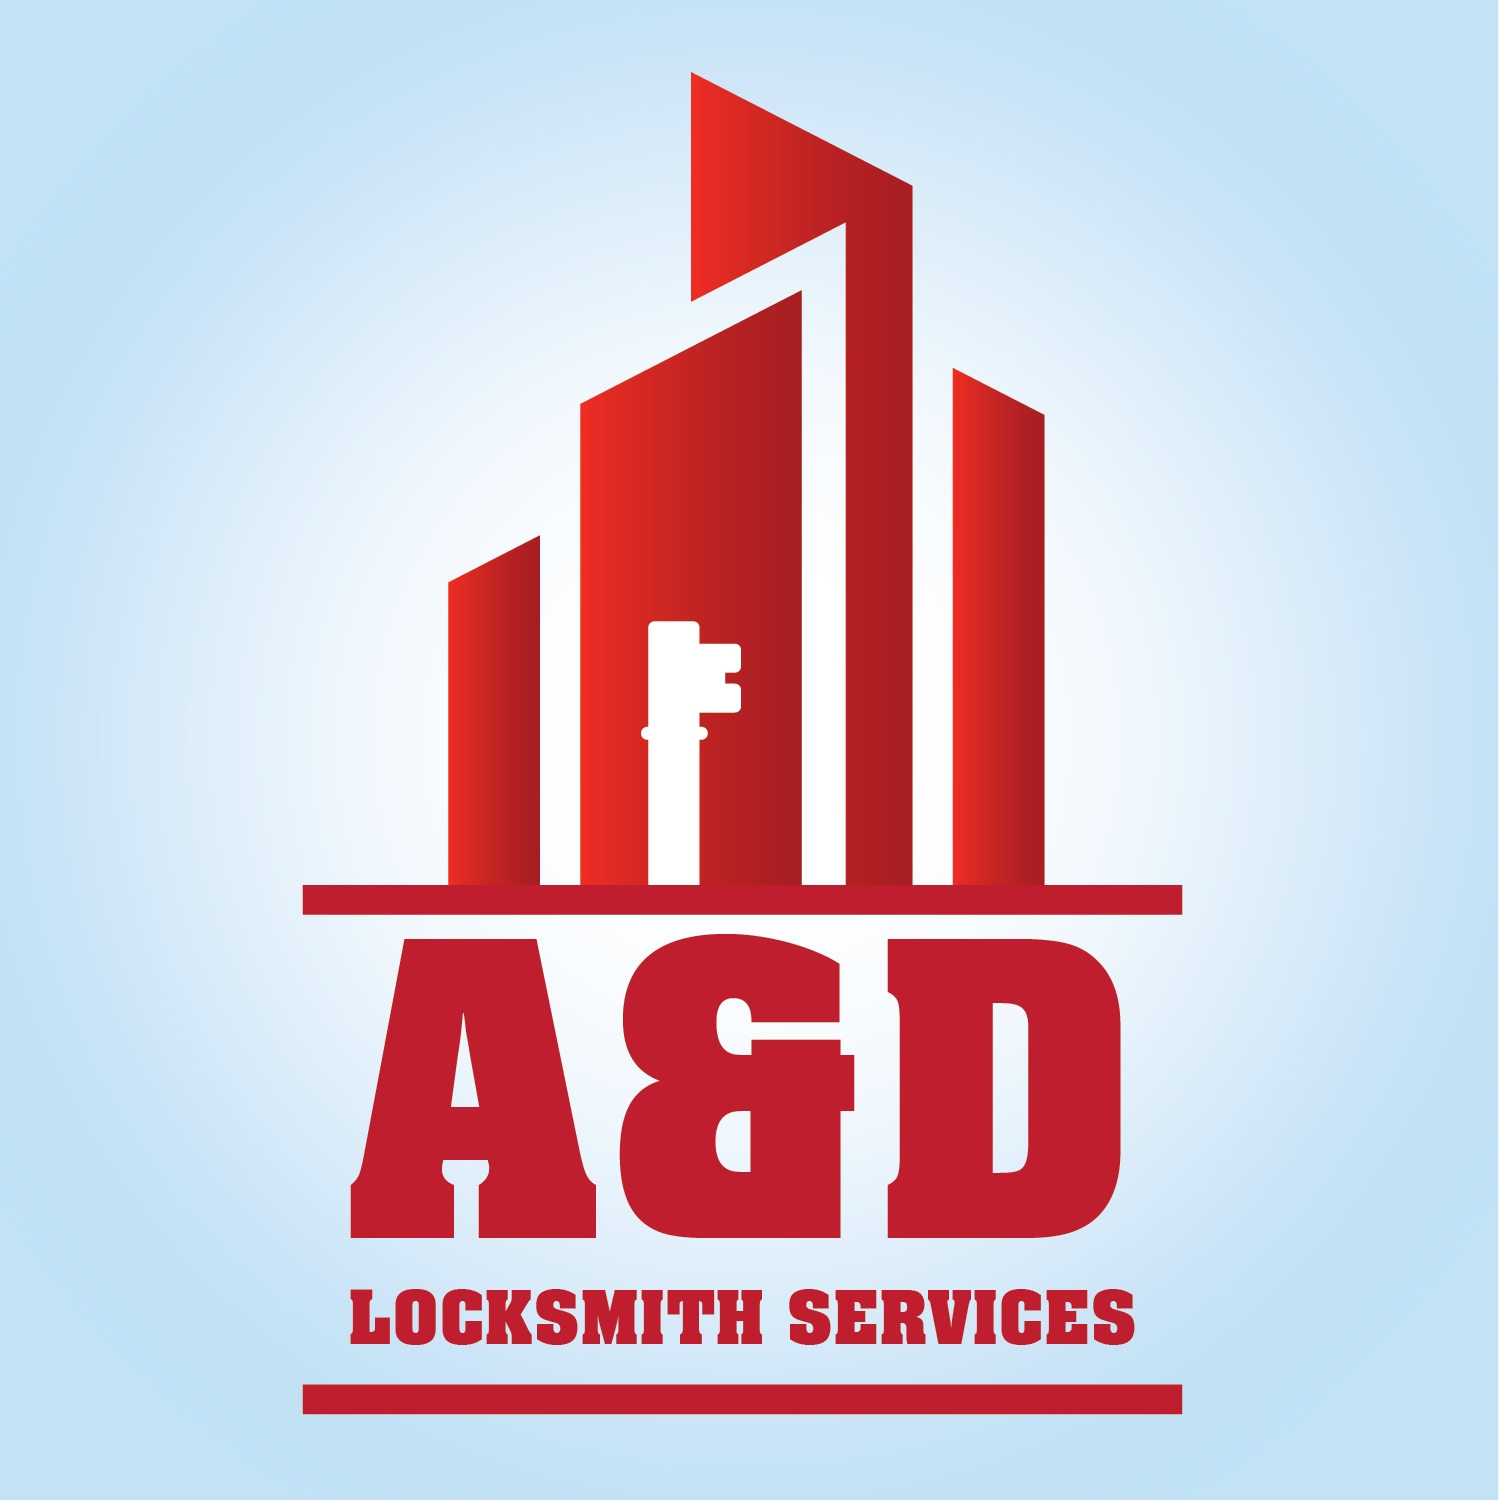 A&D Locksmith Services